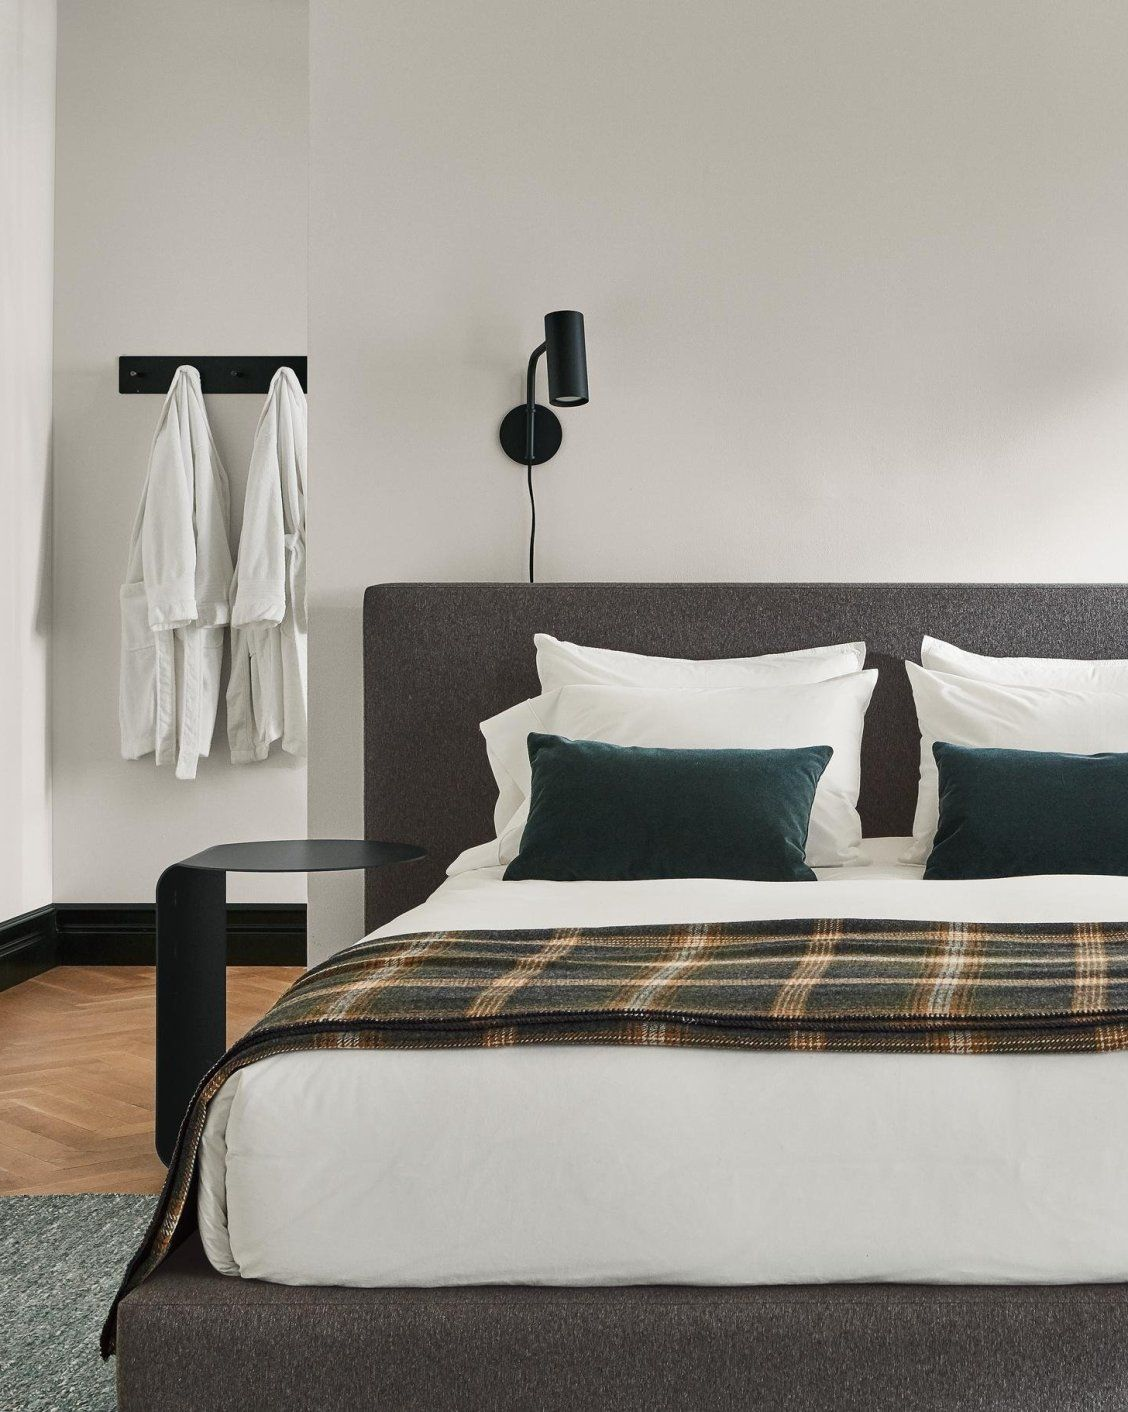 Hotel Guest Room Design: Our Modern Hotel Furniture Lends A Distinctive Look And